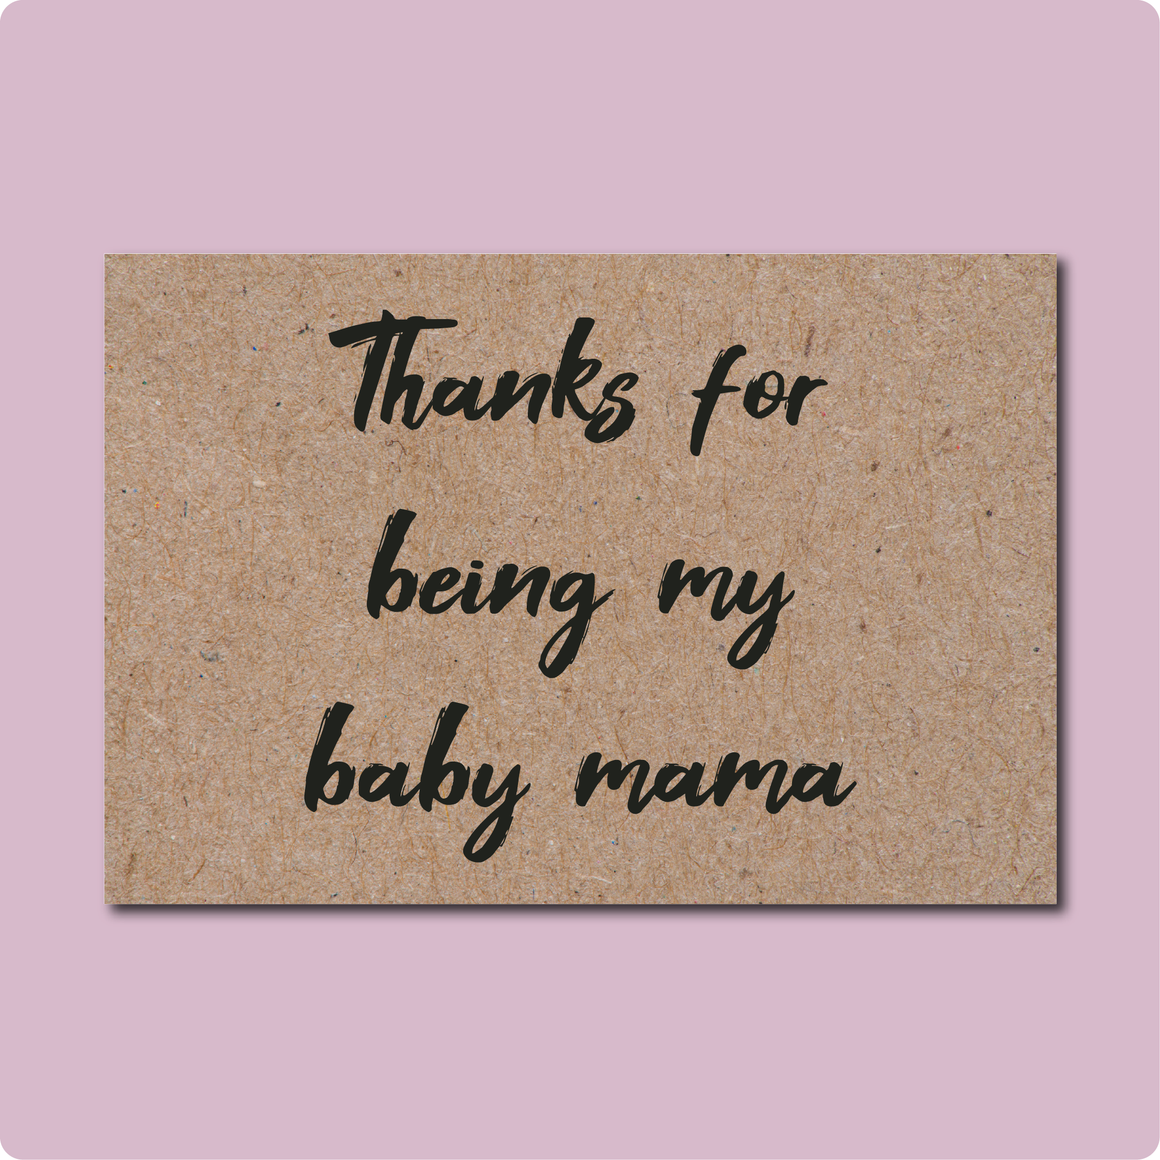 Thanks for being my baby mama Greeting Card. Text in black script font printed on Kraft Brown Australian recycled paper.